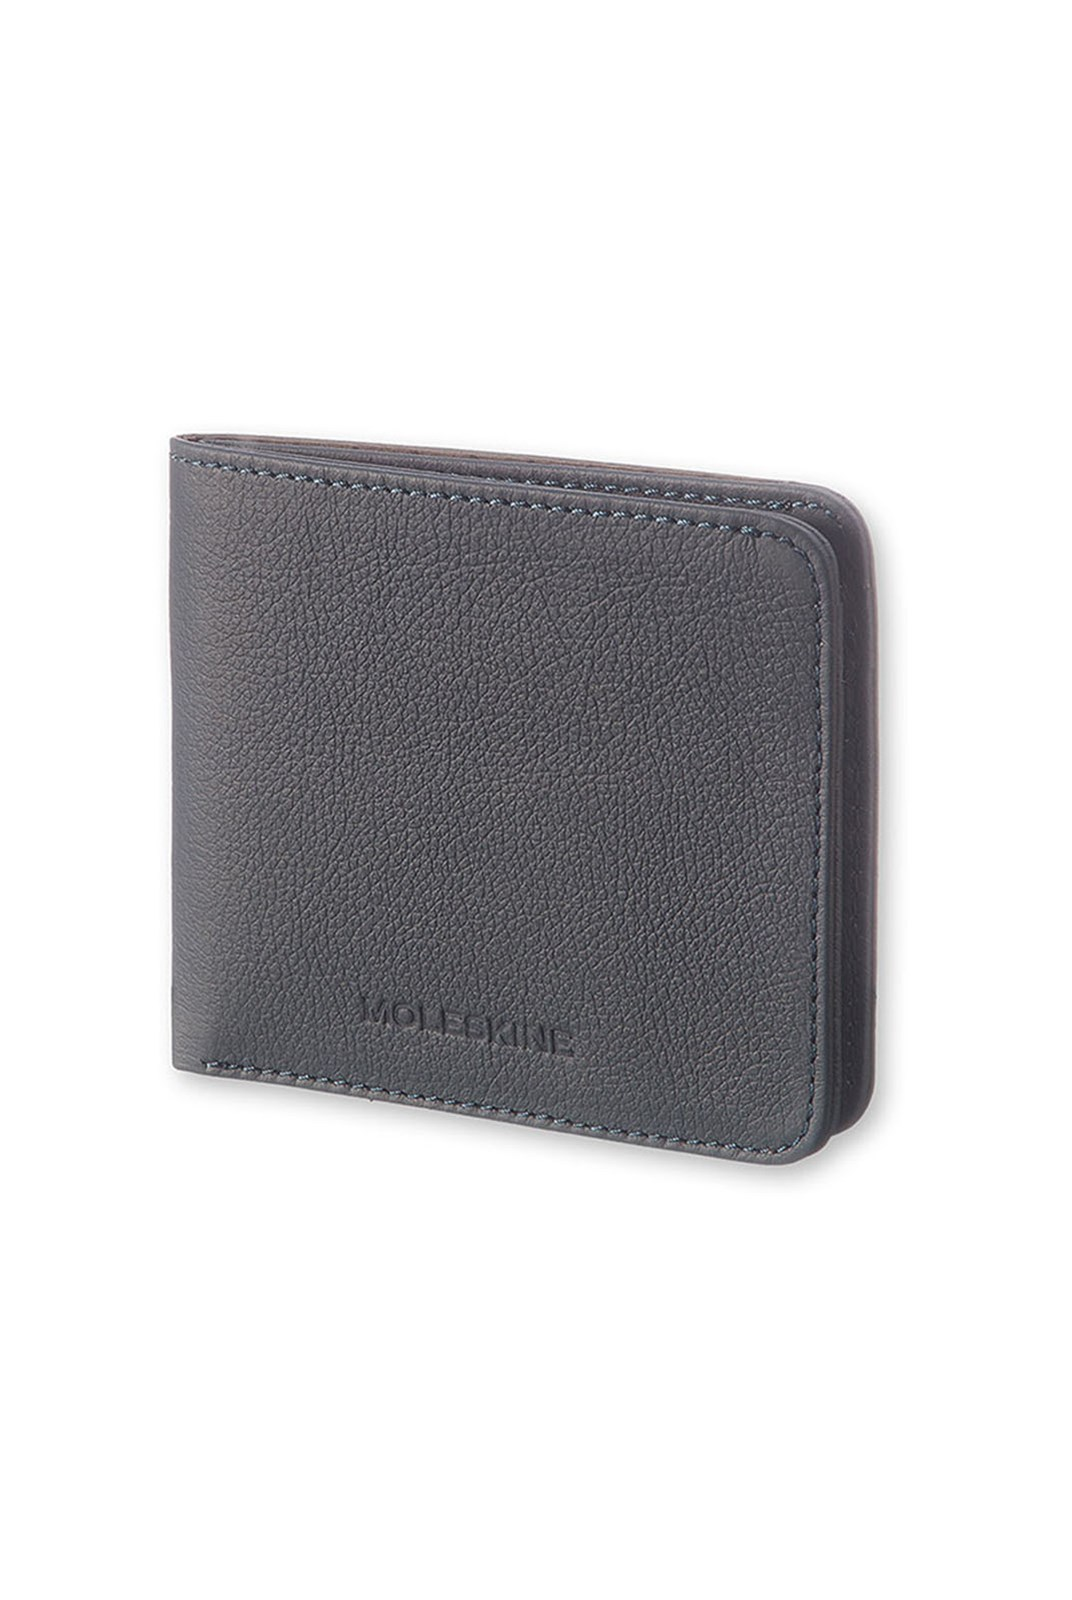 Moleskine - Lineage Leather Horizontal Wallet - Blue Avio